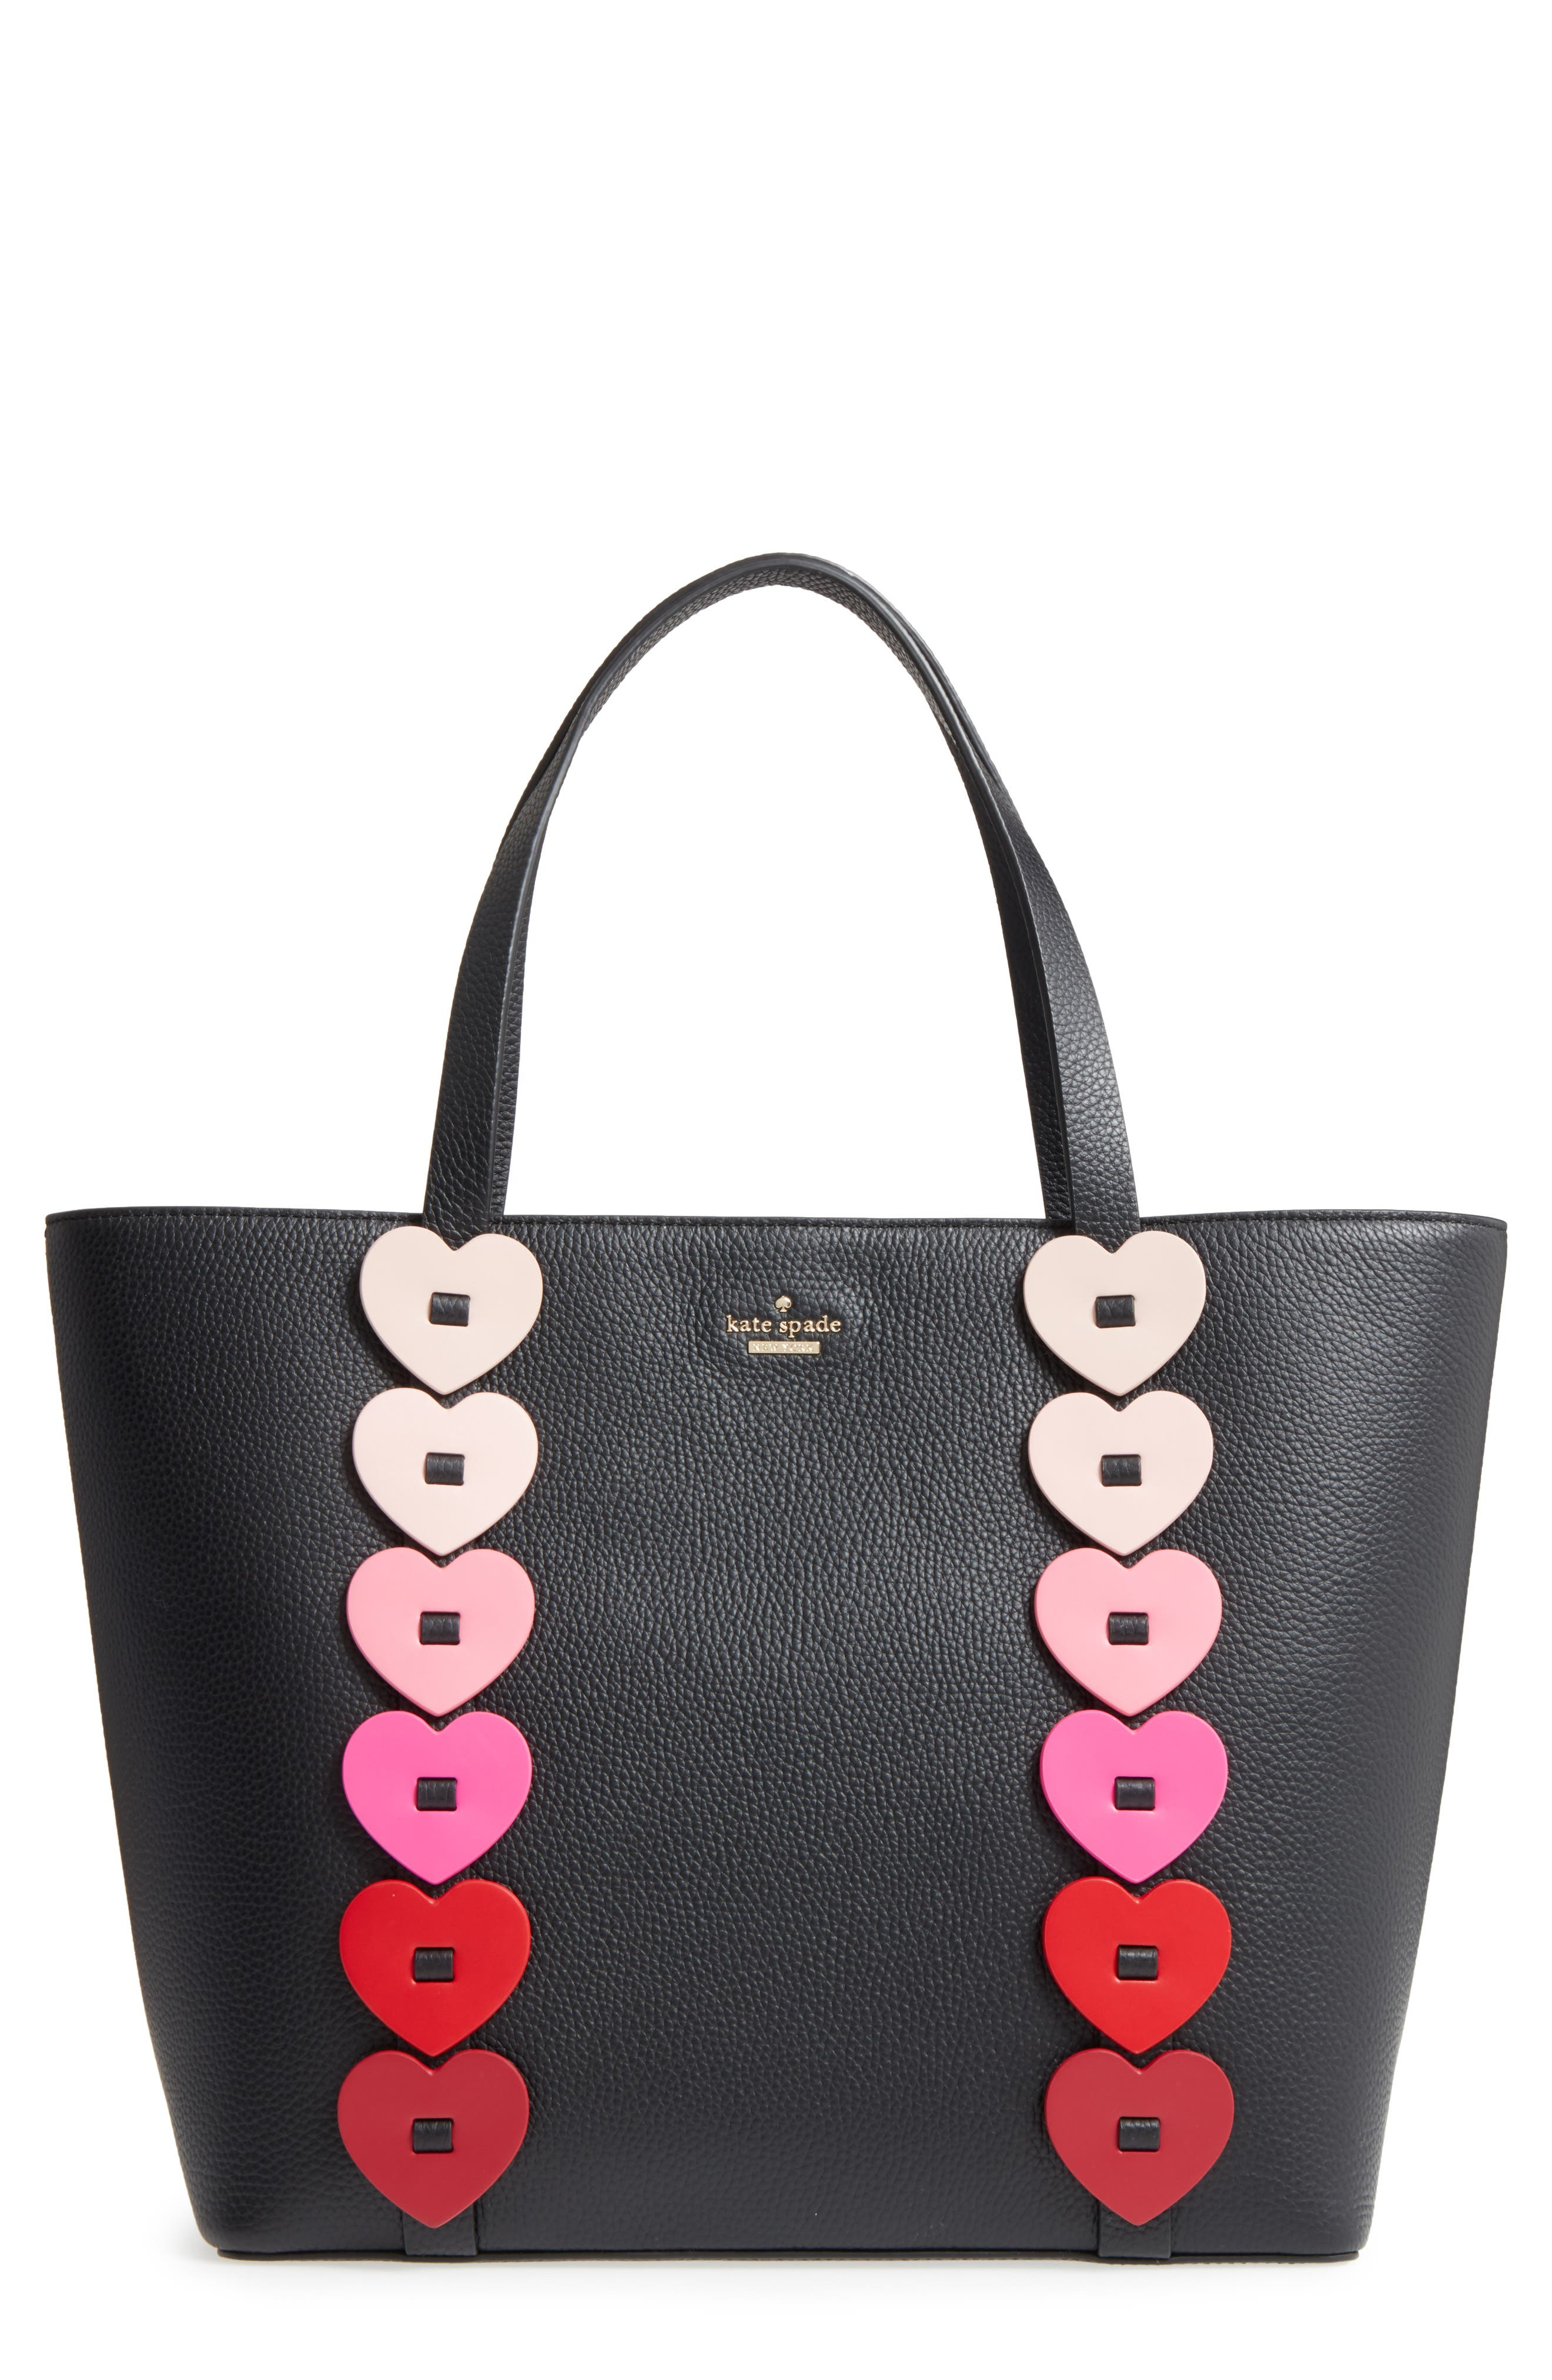 yours truly - ombré heart leather tote,                             Main thumbnail 1, color,